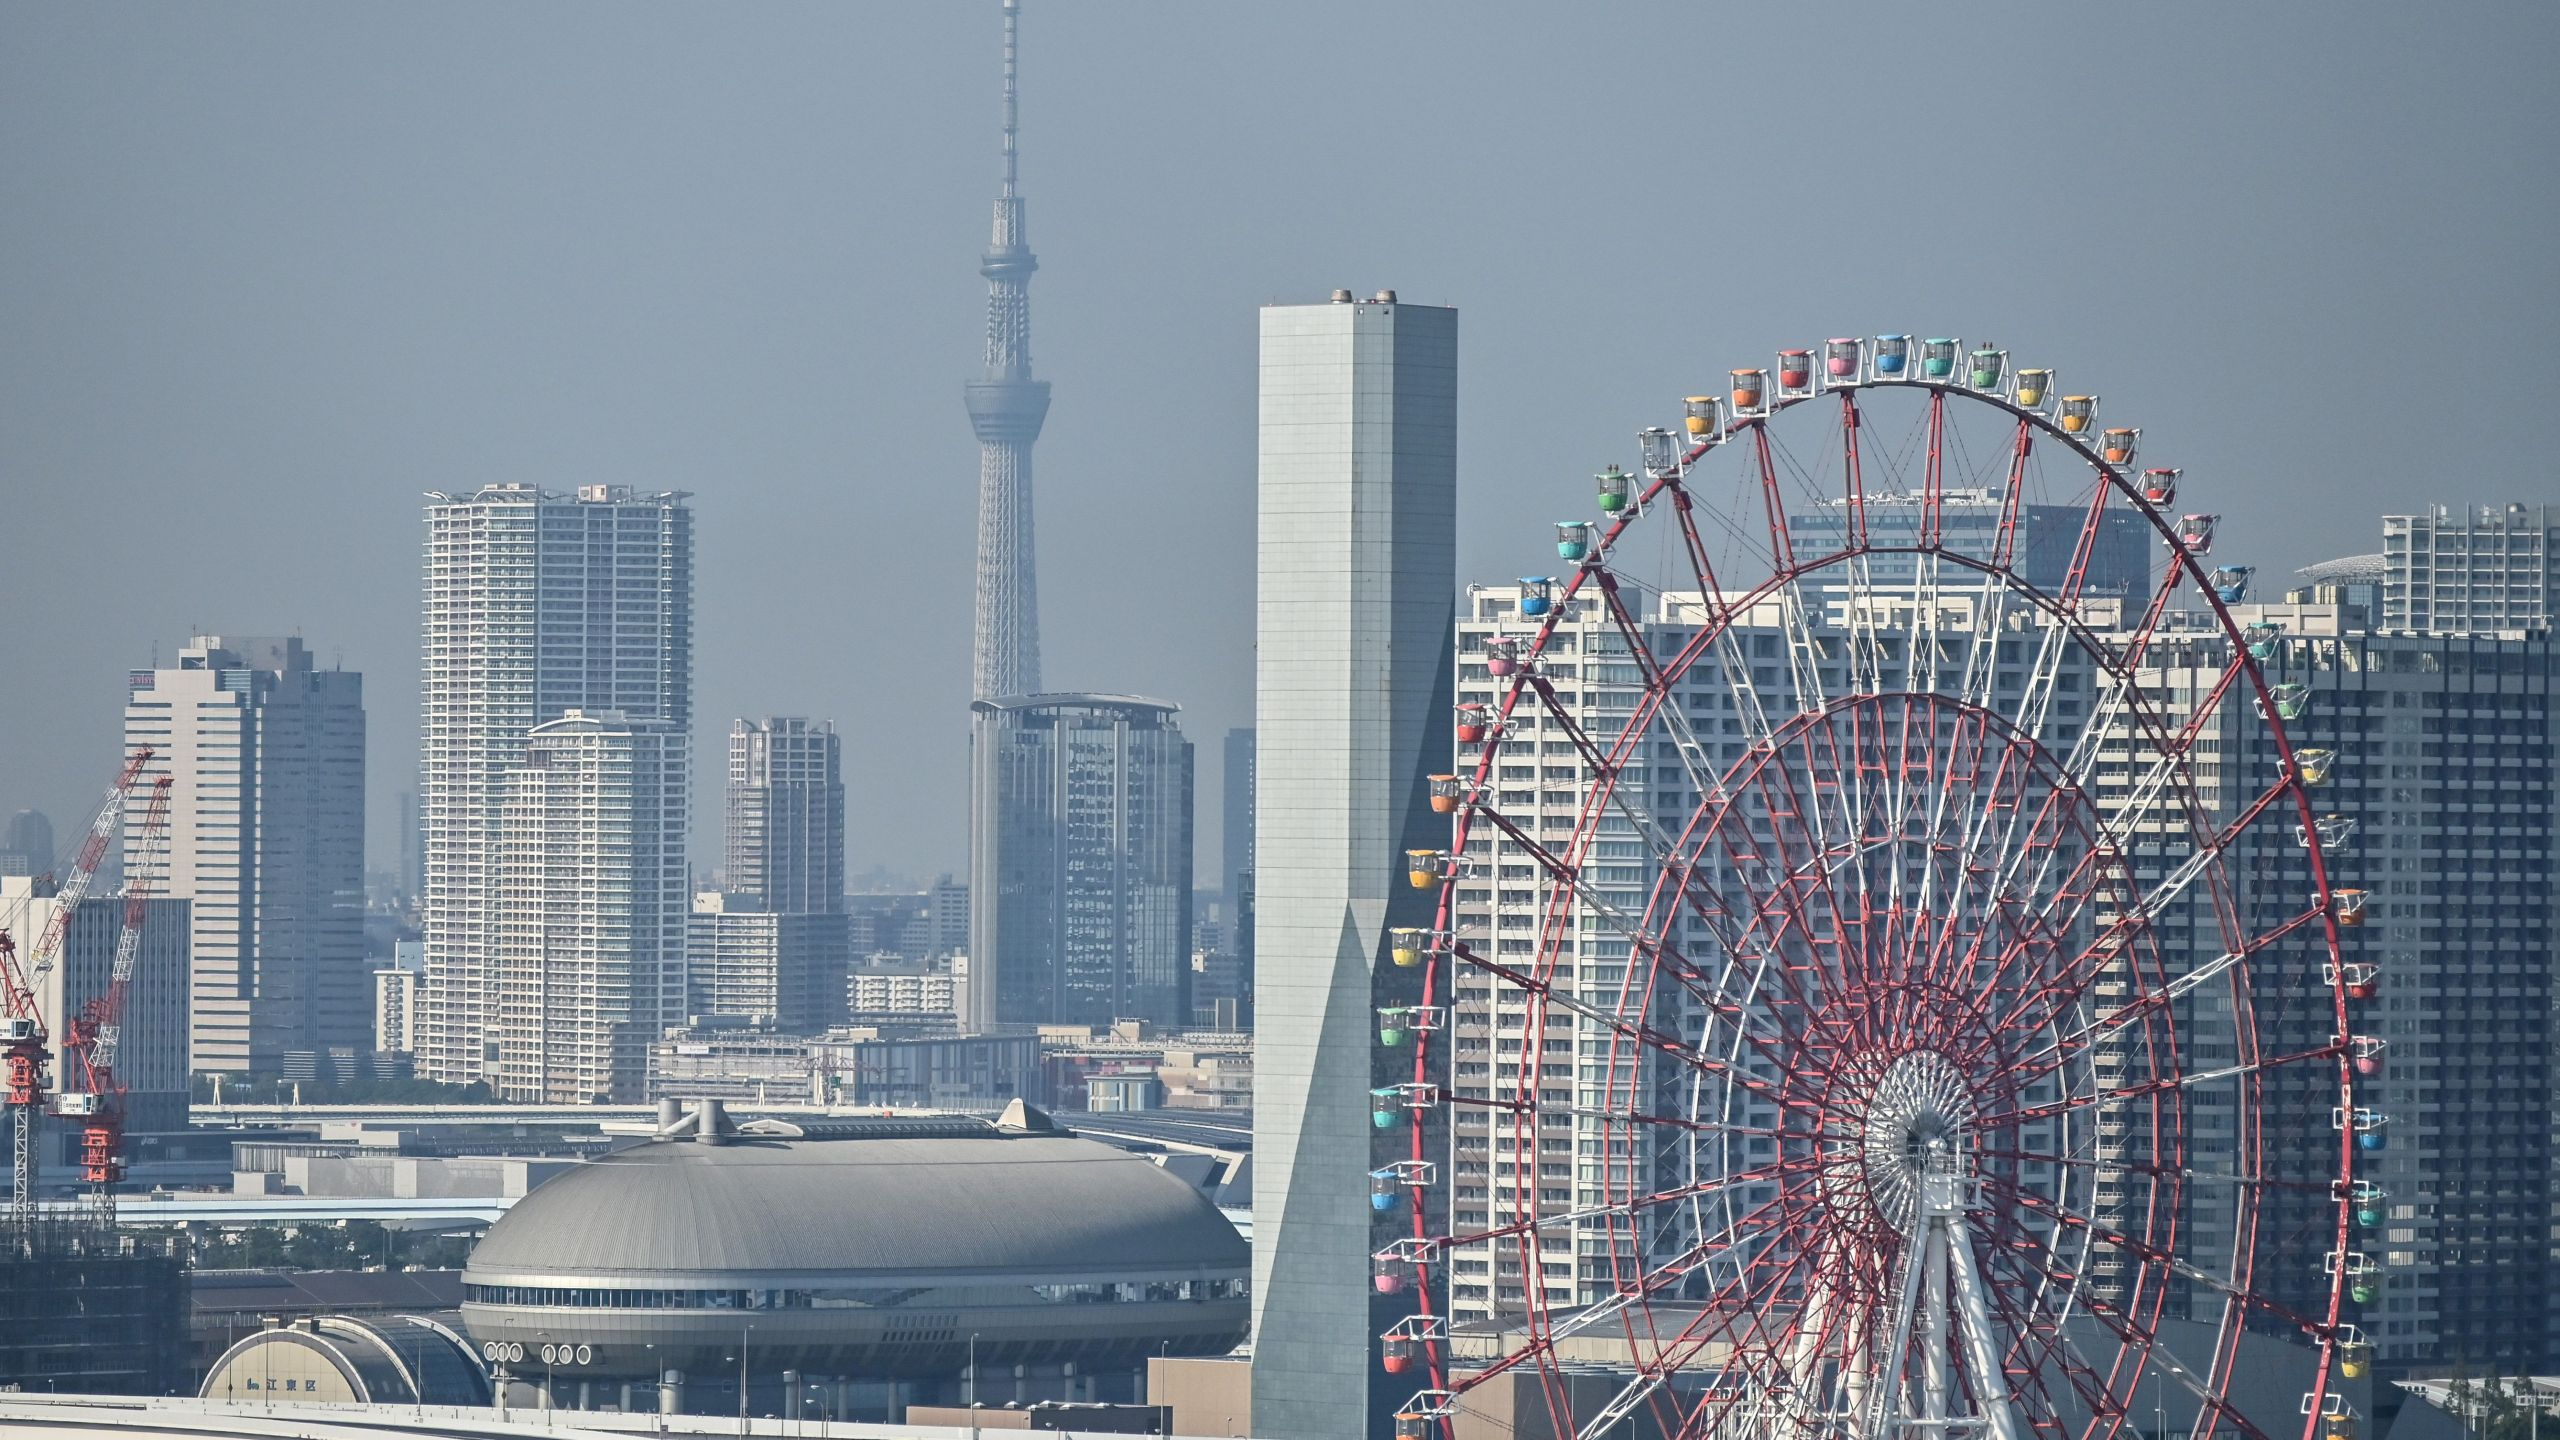 A general view shows the city skyline in Tokyo on August 17, 2020. (CHARLY TRIBALLEAU/AFP via Getty Images)